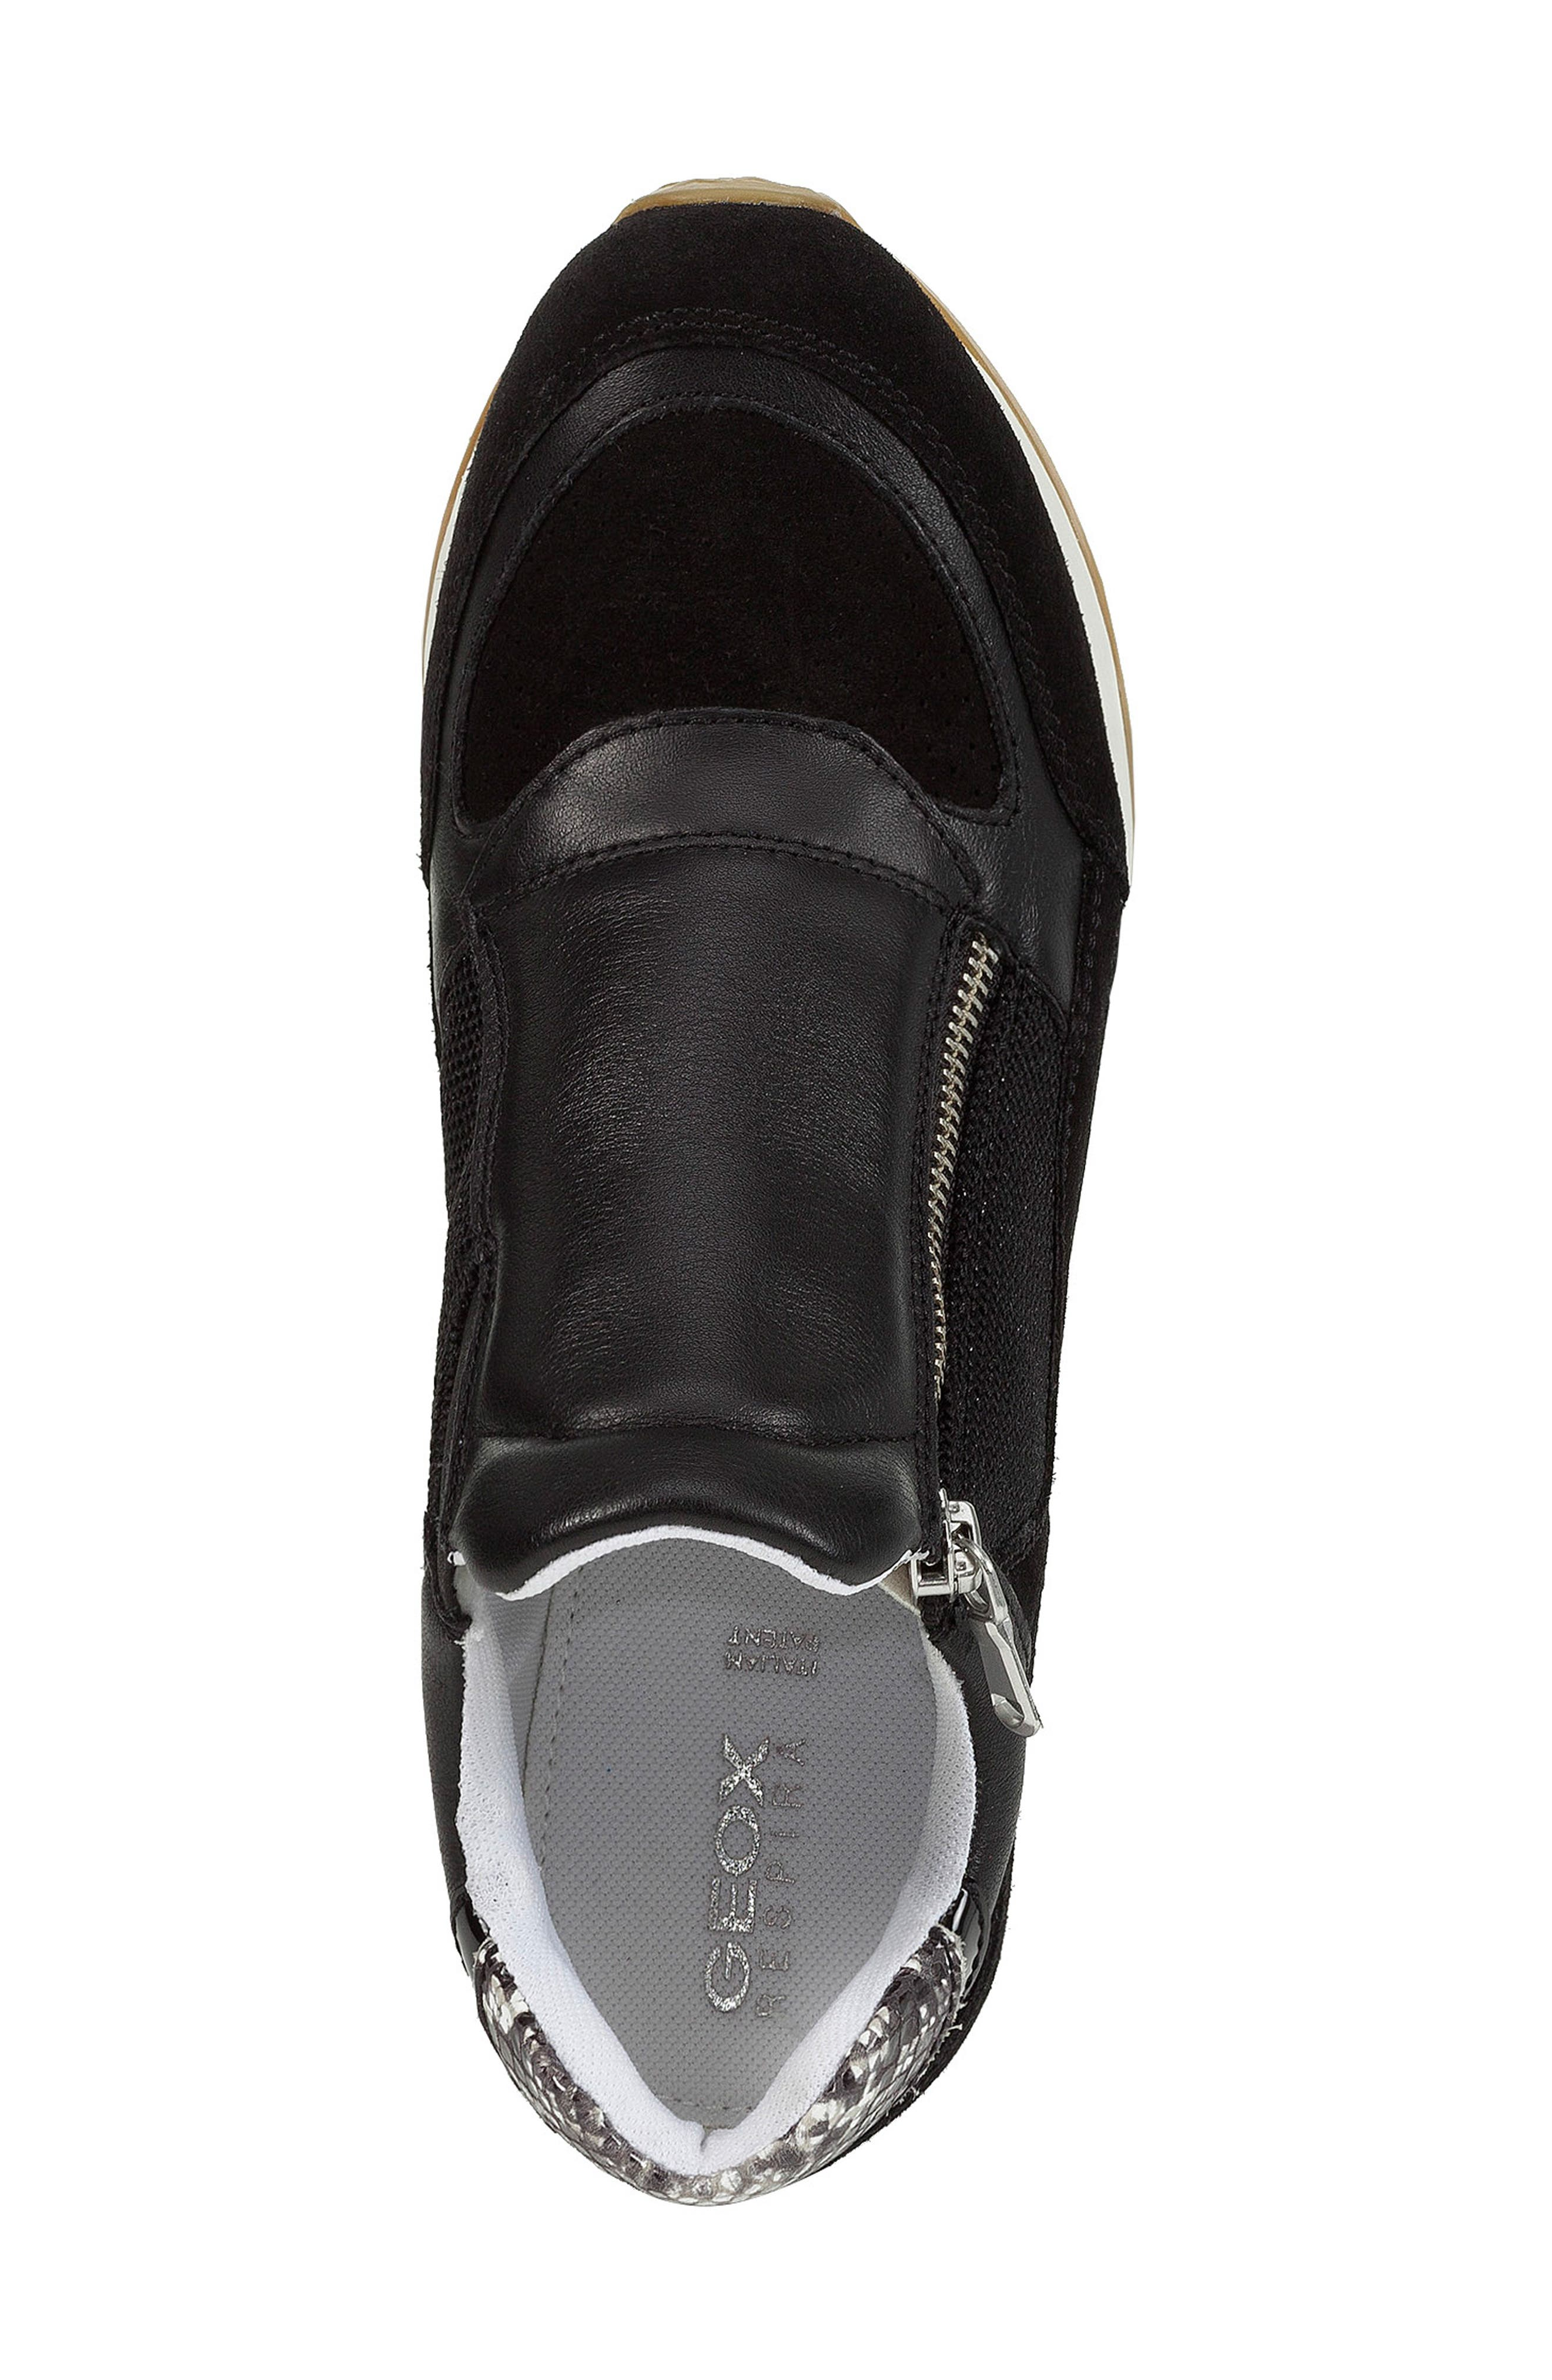 Nydame Wedge Sneaker,                             Alternate thumbnail 5, color,                             BLACK/ BLACK LEATHER